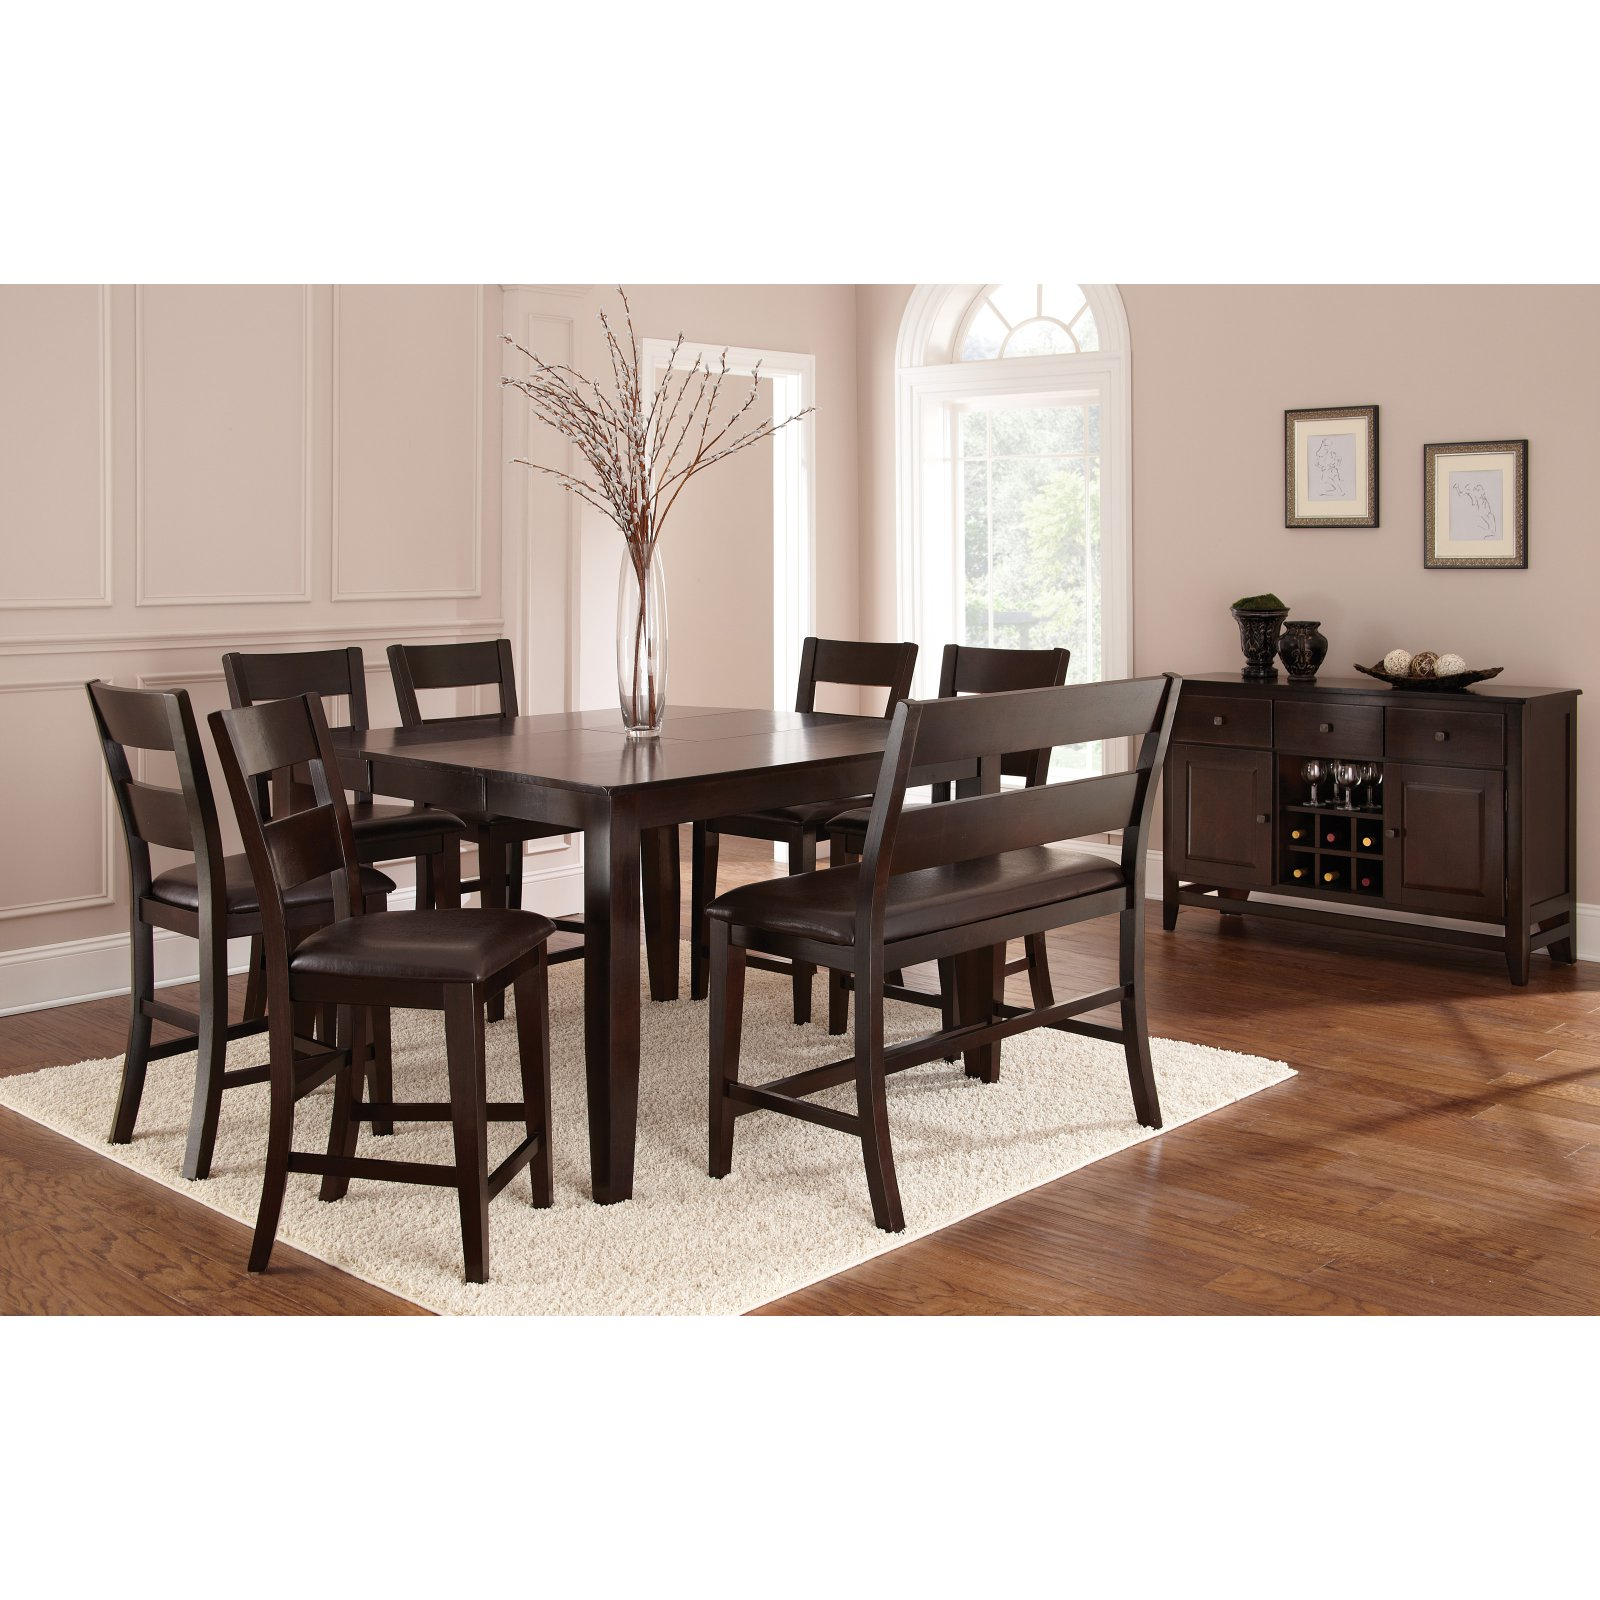 Captivating Steve Silver Victoria Counter Height Dining Table   Mango